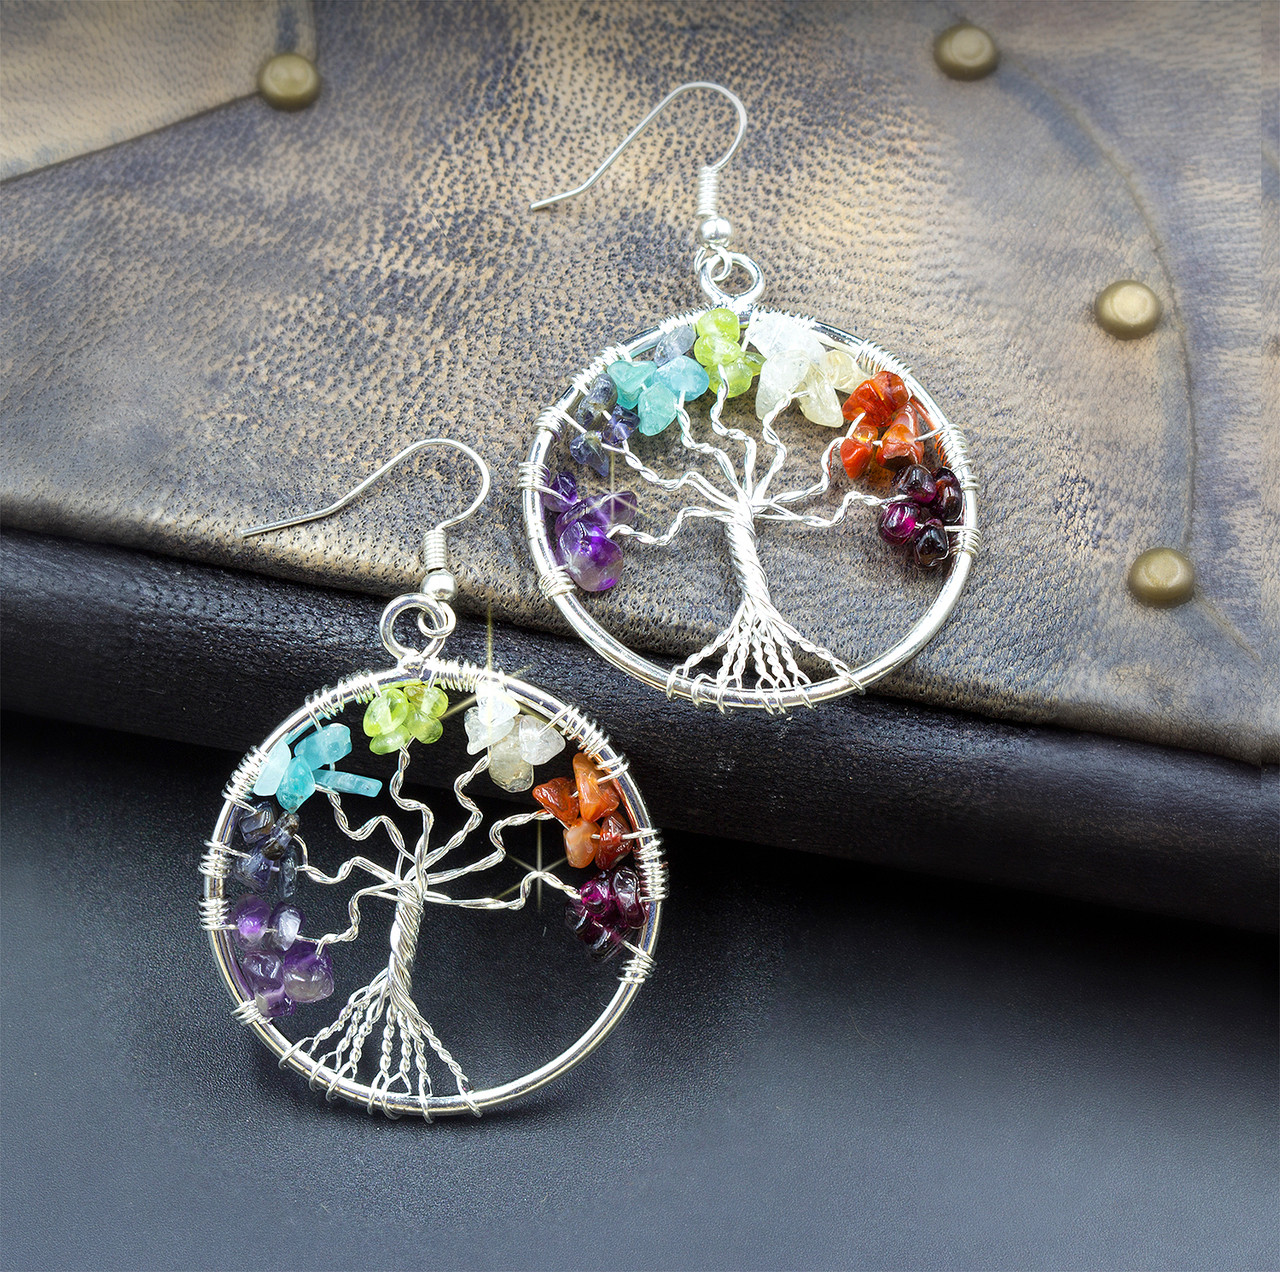 The Miracle In Natural Jewelry